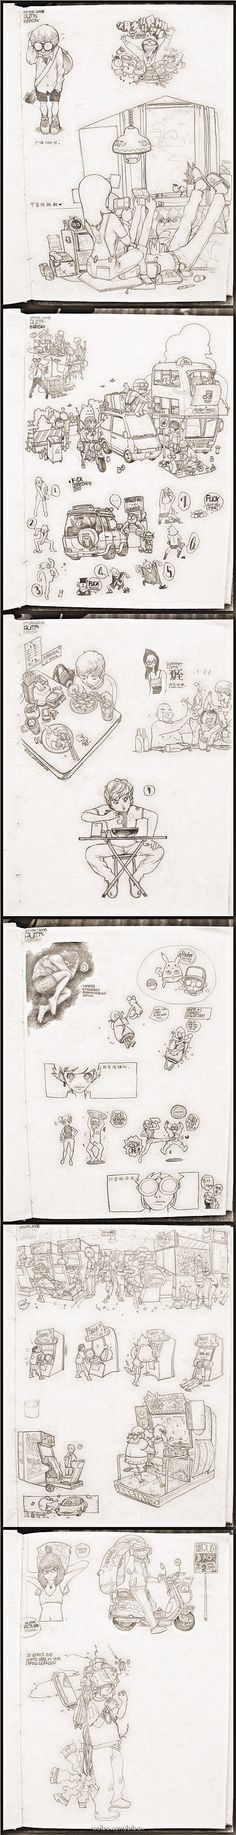 2008 Sketchbook by bibo X, via Behance